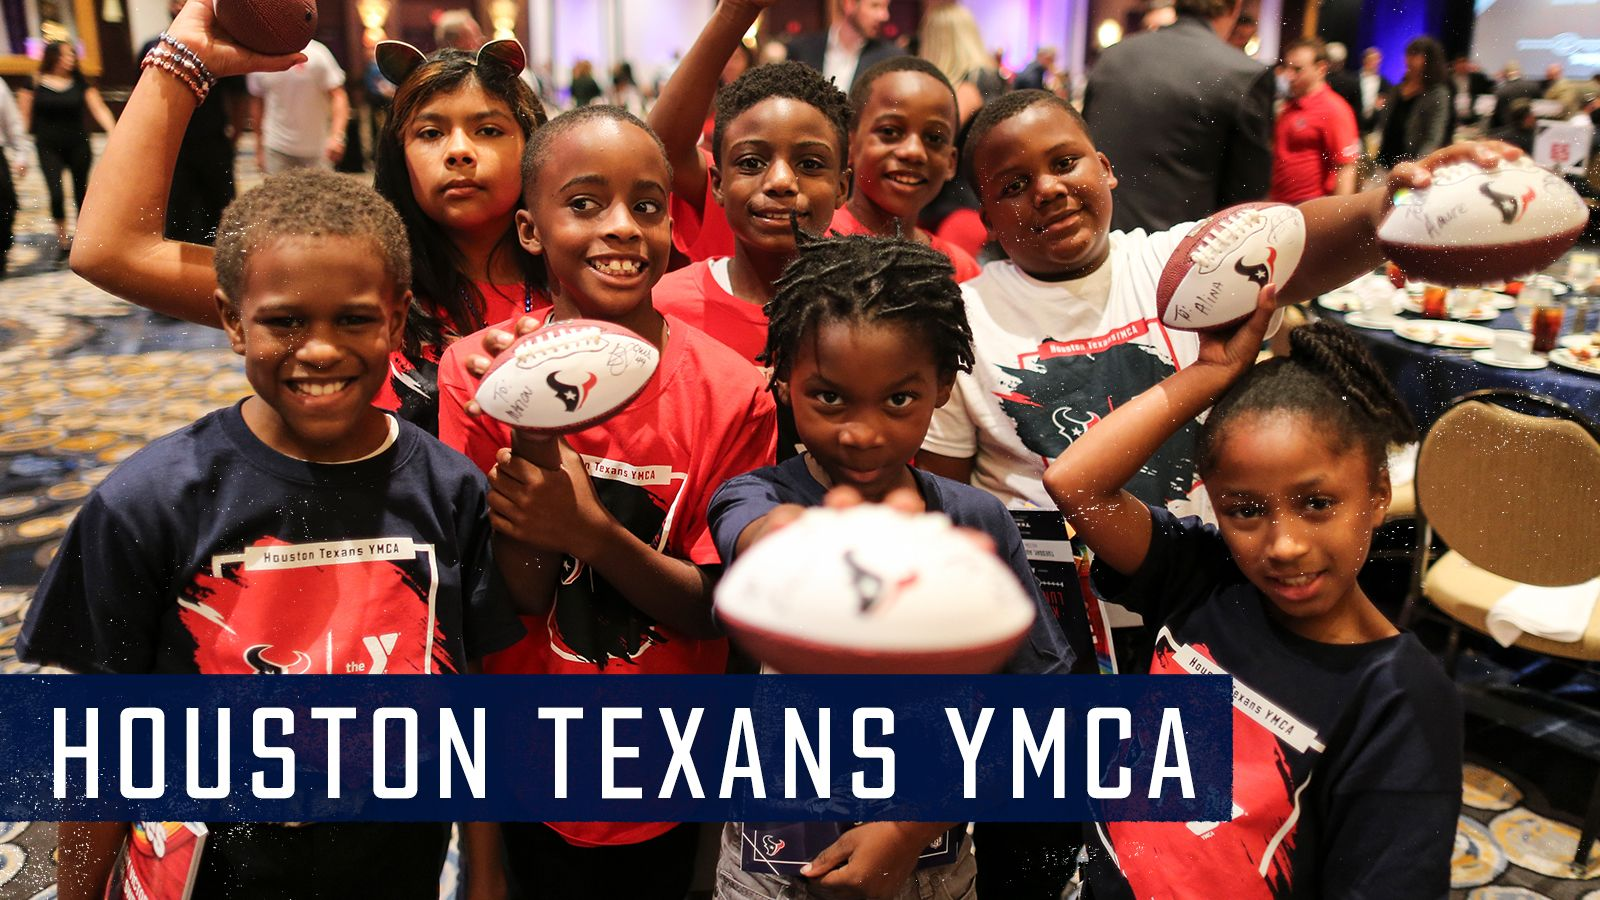 button_HoustonTexansYMCA